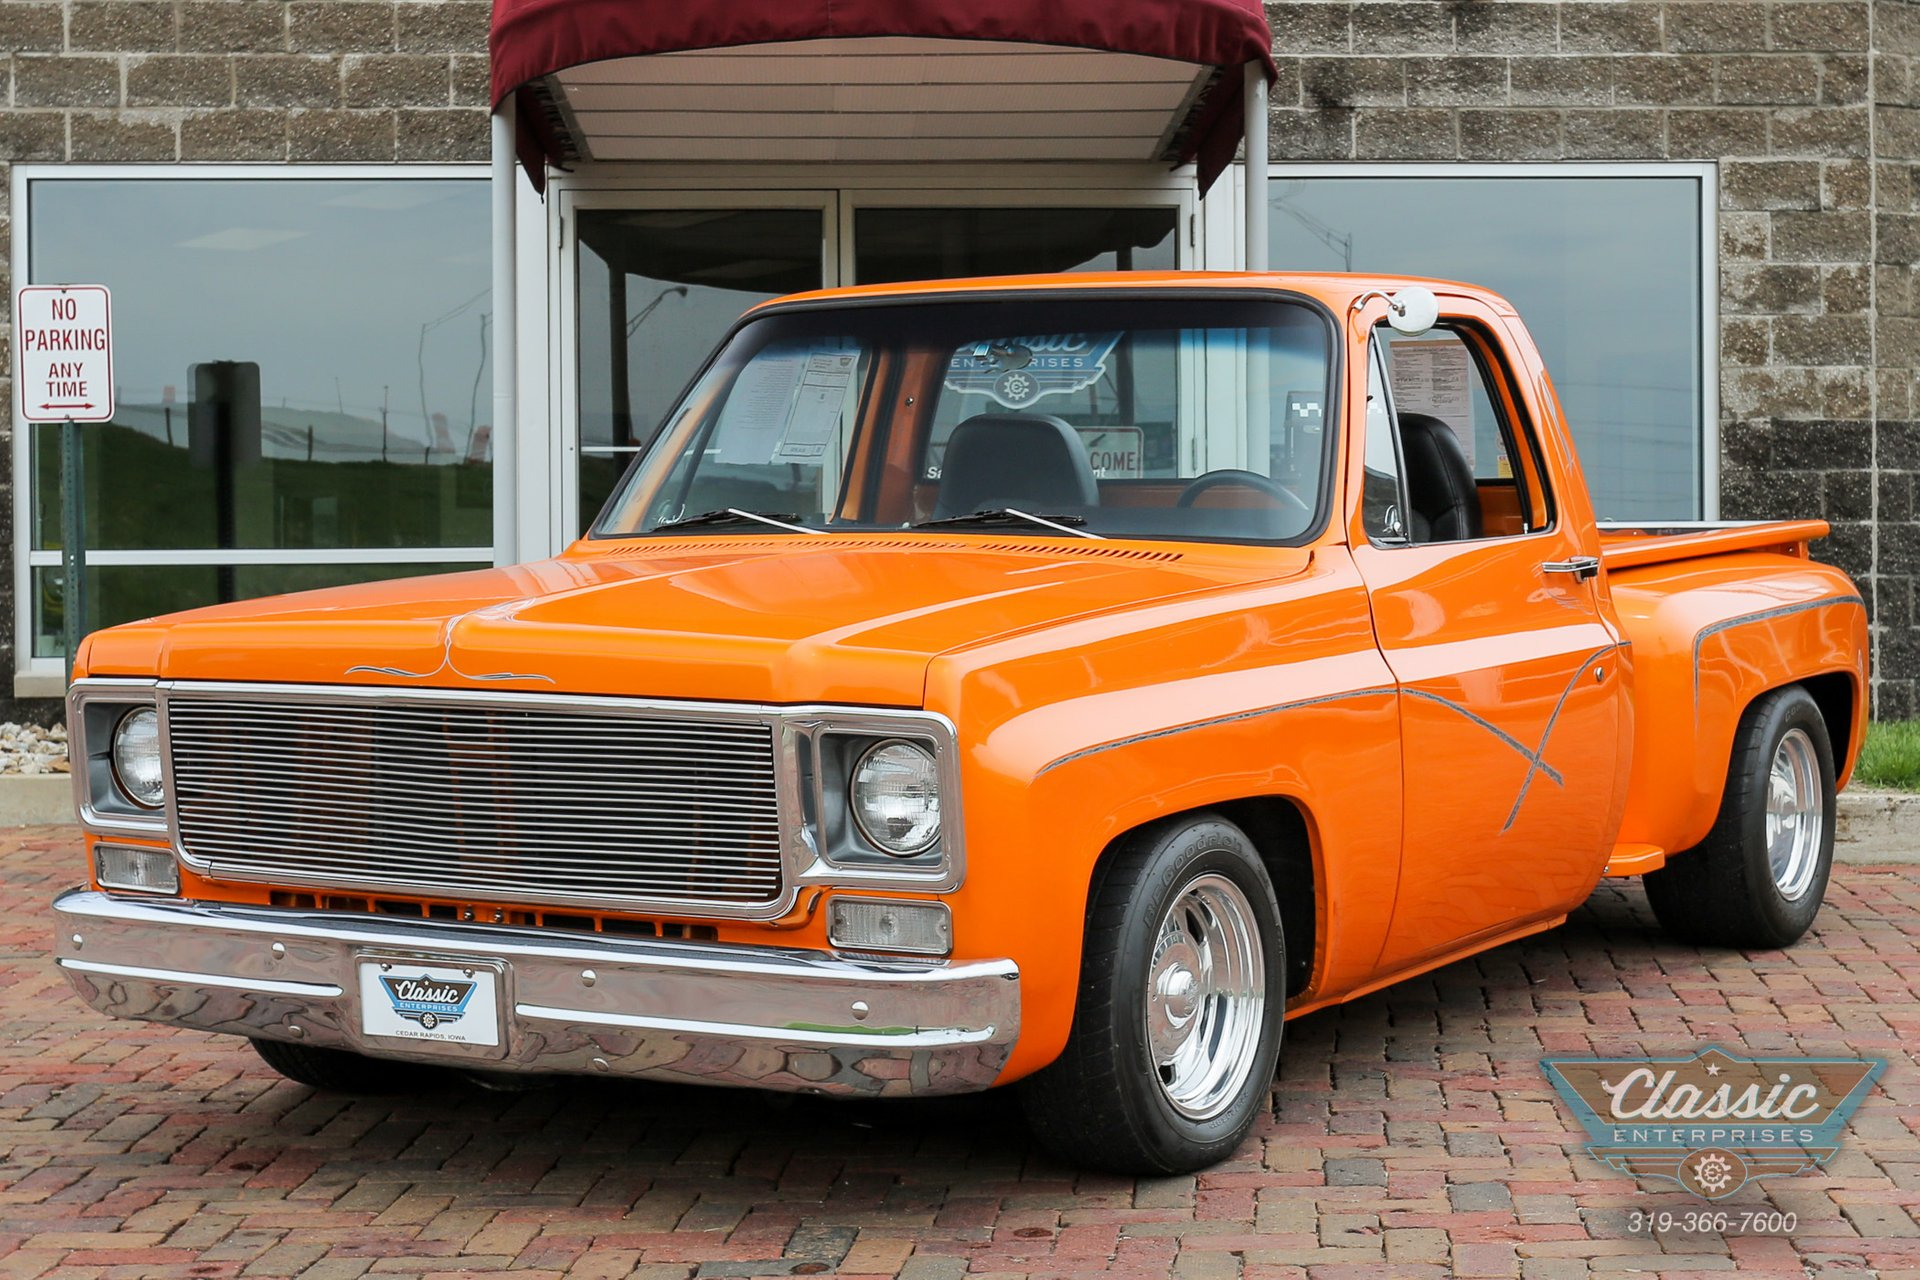 1978 Chevrolet C10 Duffy S Classic Cars